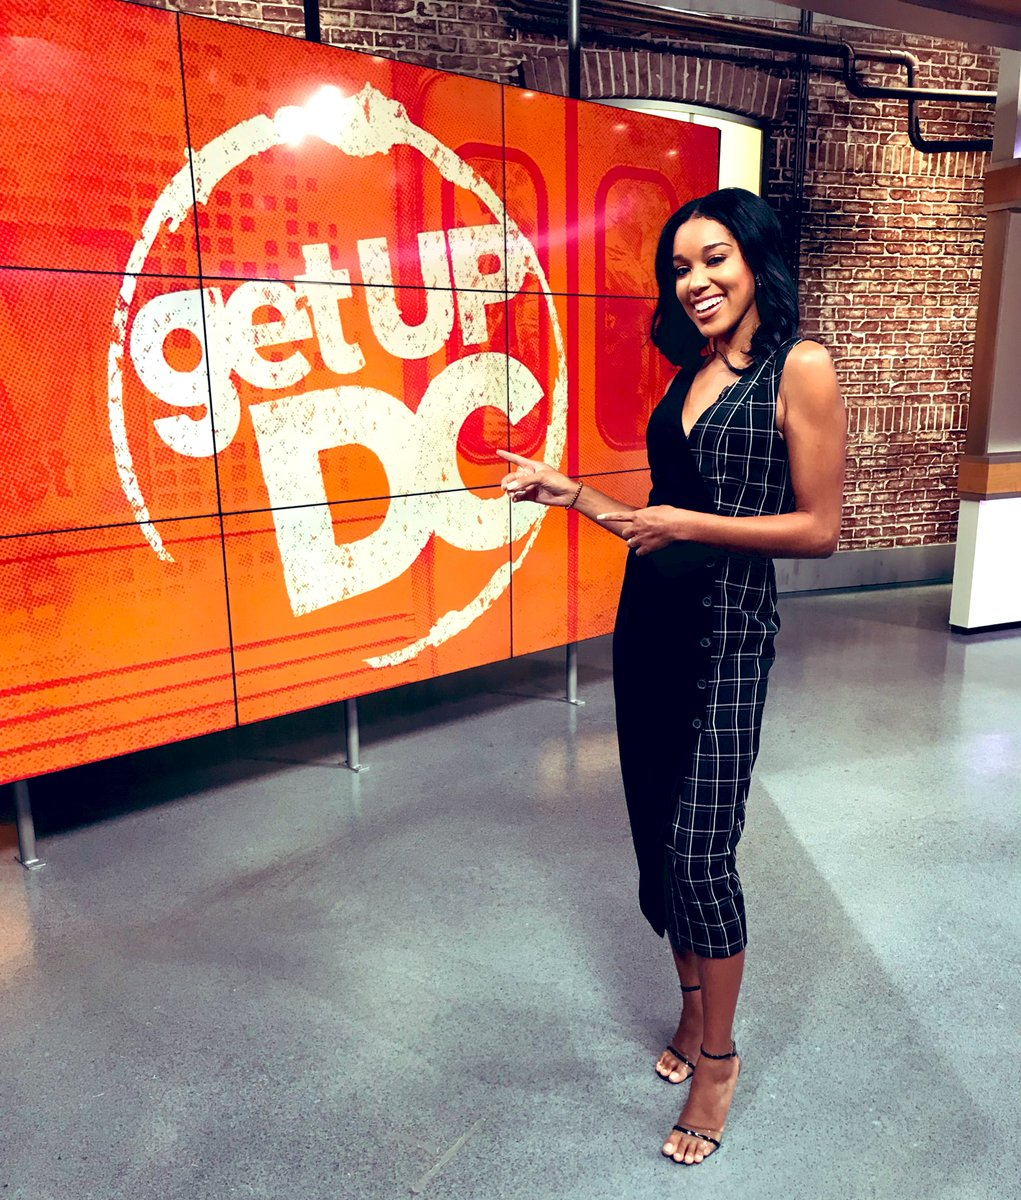 Happy Friday! Hope you got your day started with #GetUpDC.  @wusa9<br>http://pic.twitter.com/kCFl7FVrHO